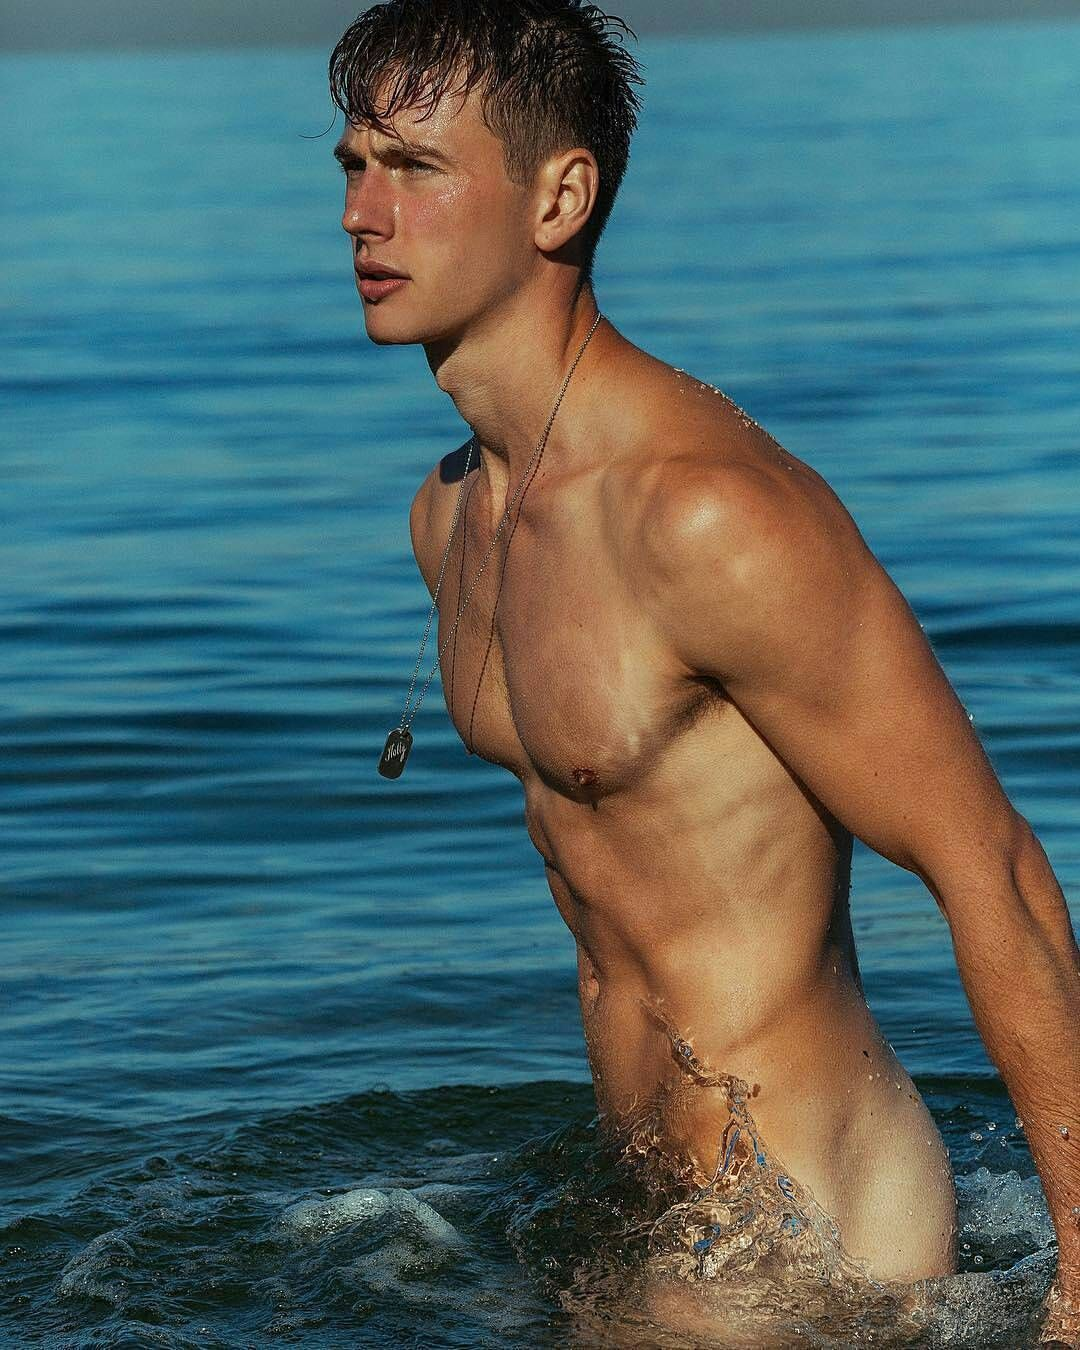 Hot gay man in charmed